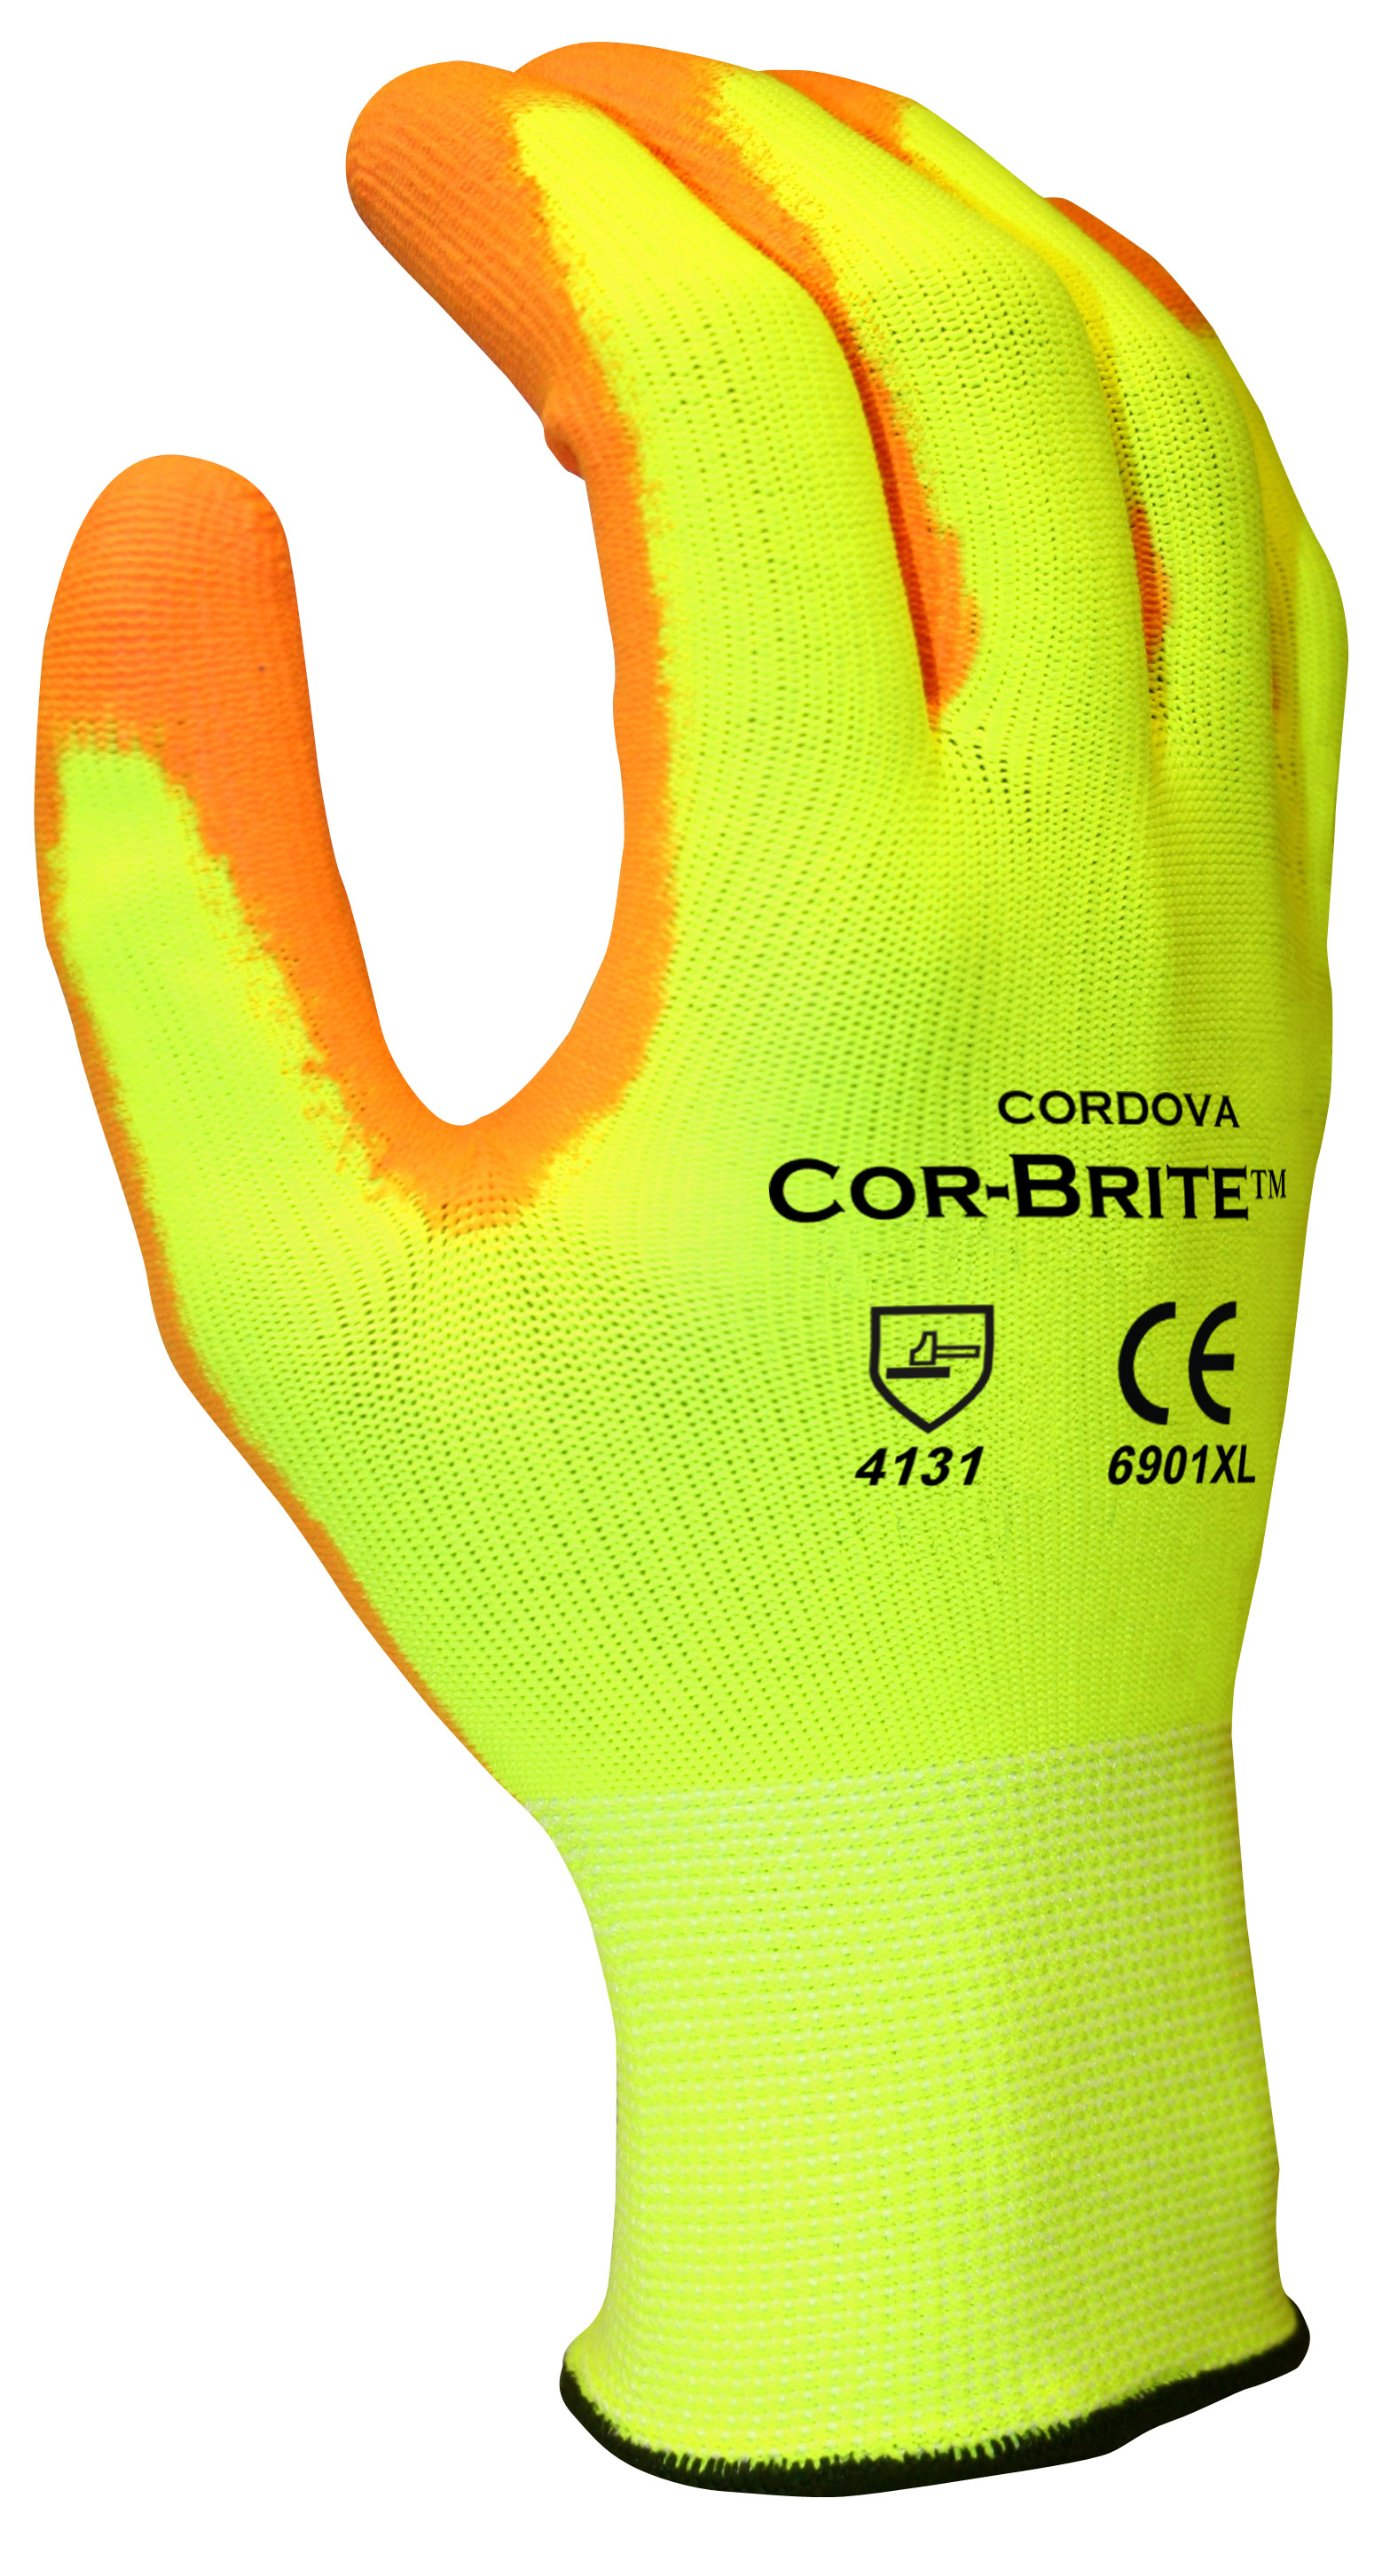 Cordova Safety Products 6901LC Cor-Brite 13 Gauge PU-Coated Polyester Work Gloves (Pack of 144 PR),